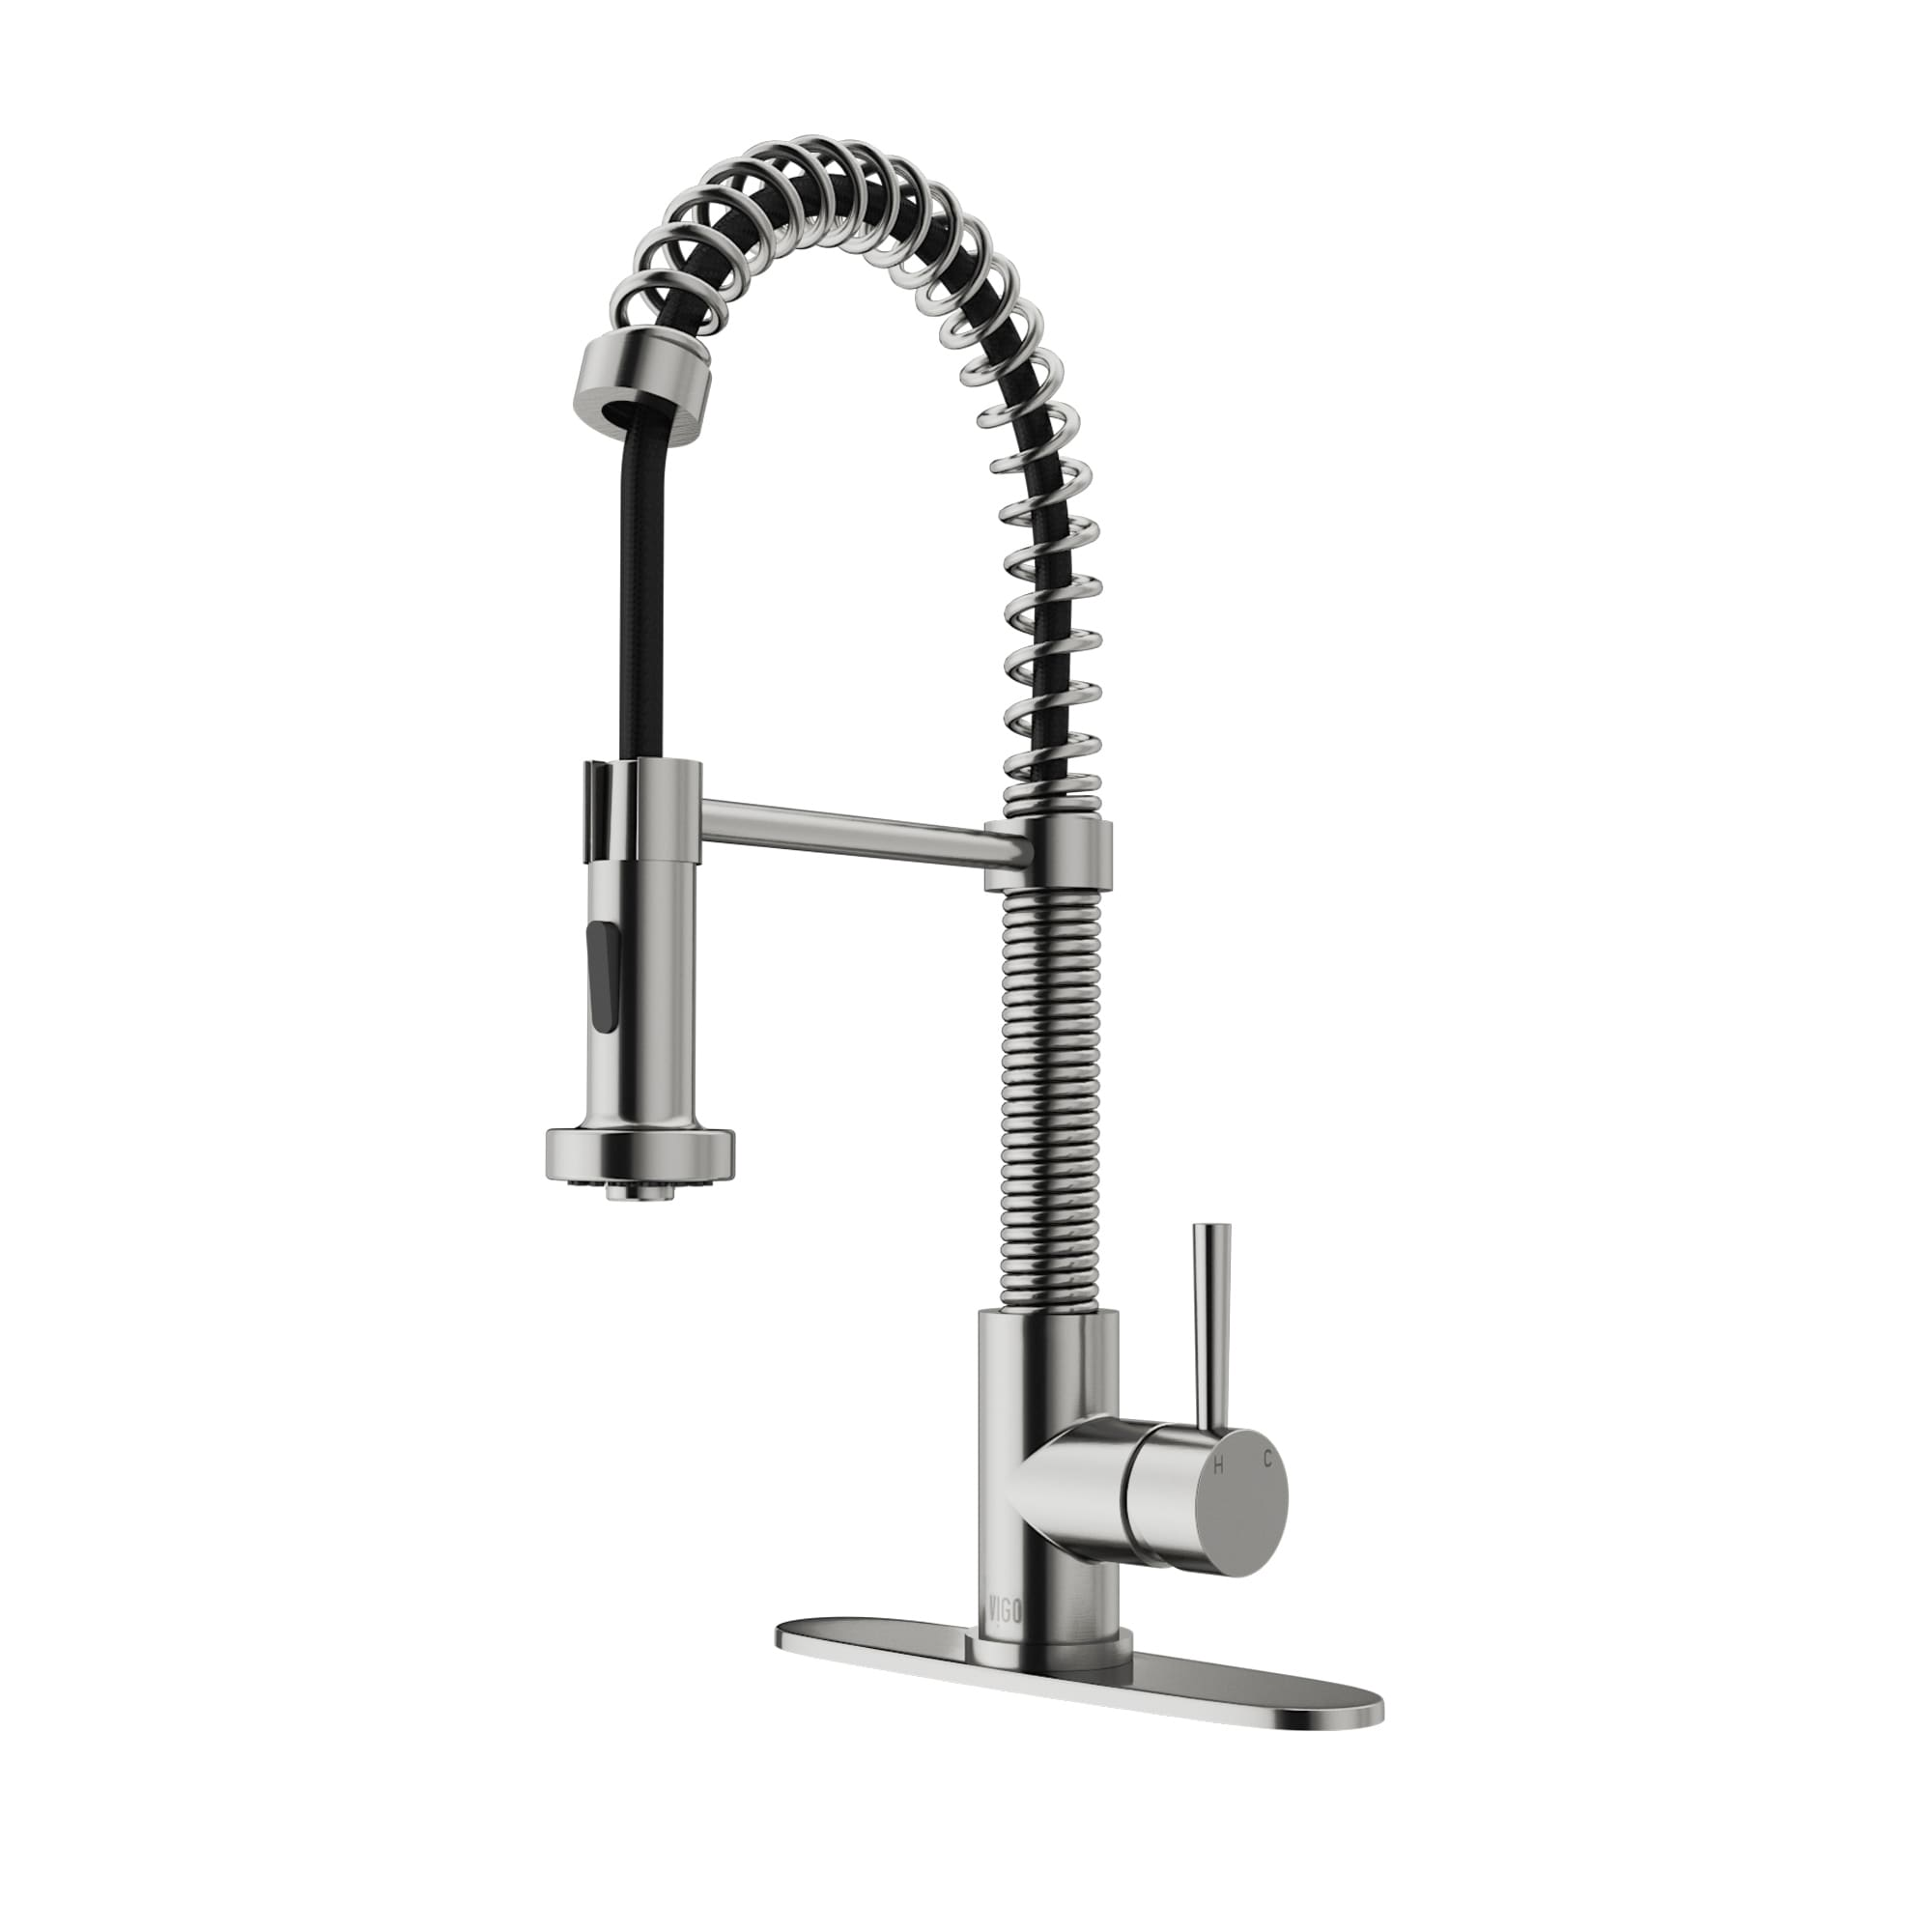 crespo faucets dp single faucet uzcnl down com kitchen amazon lever kraus stainless pull steel modern kpf